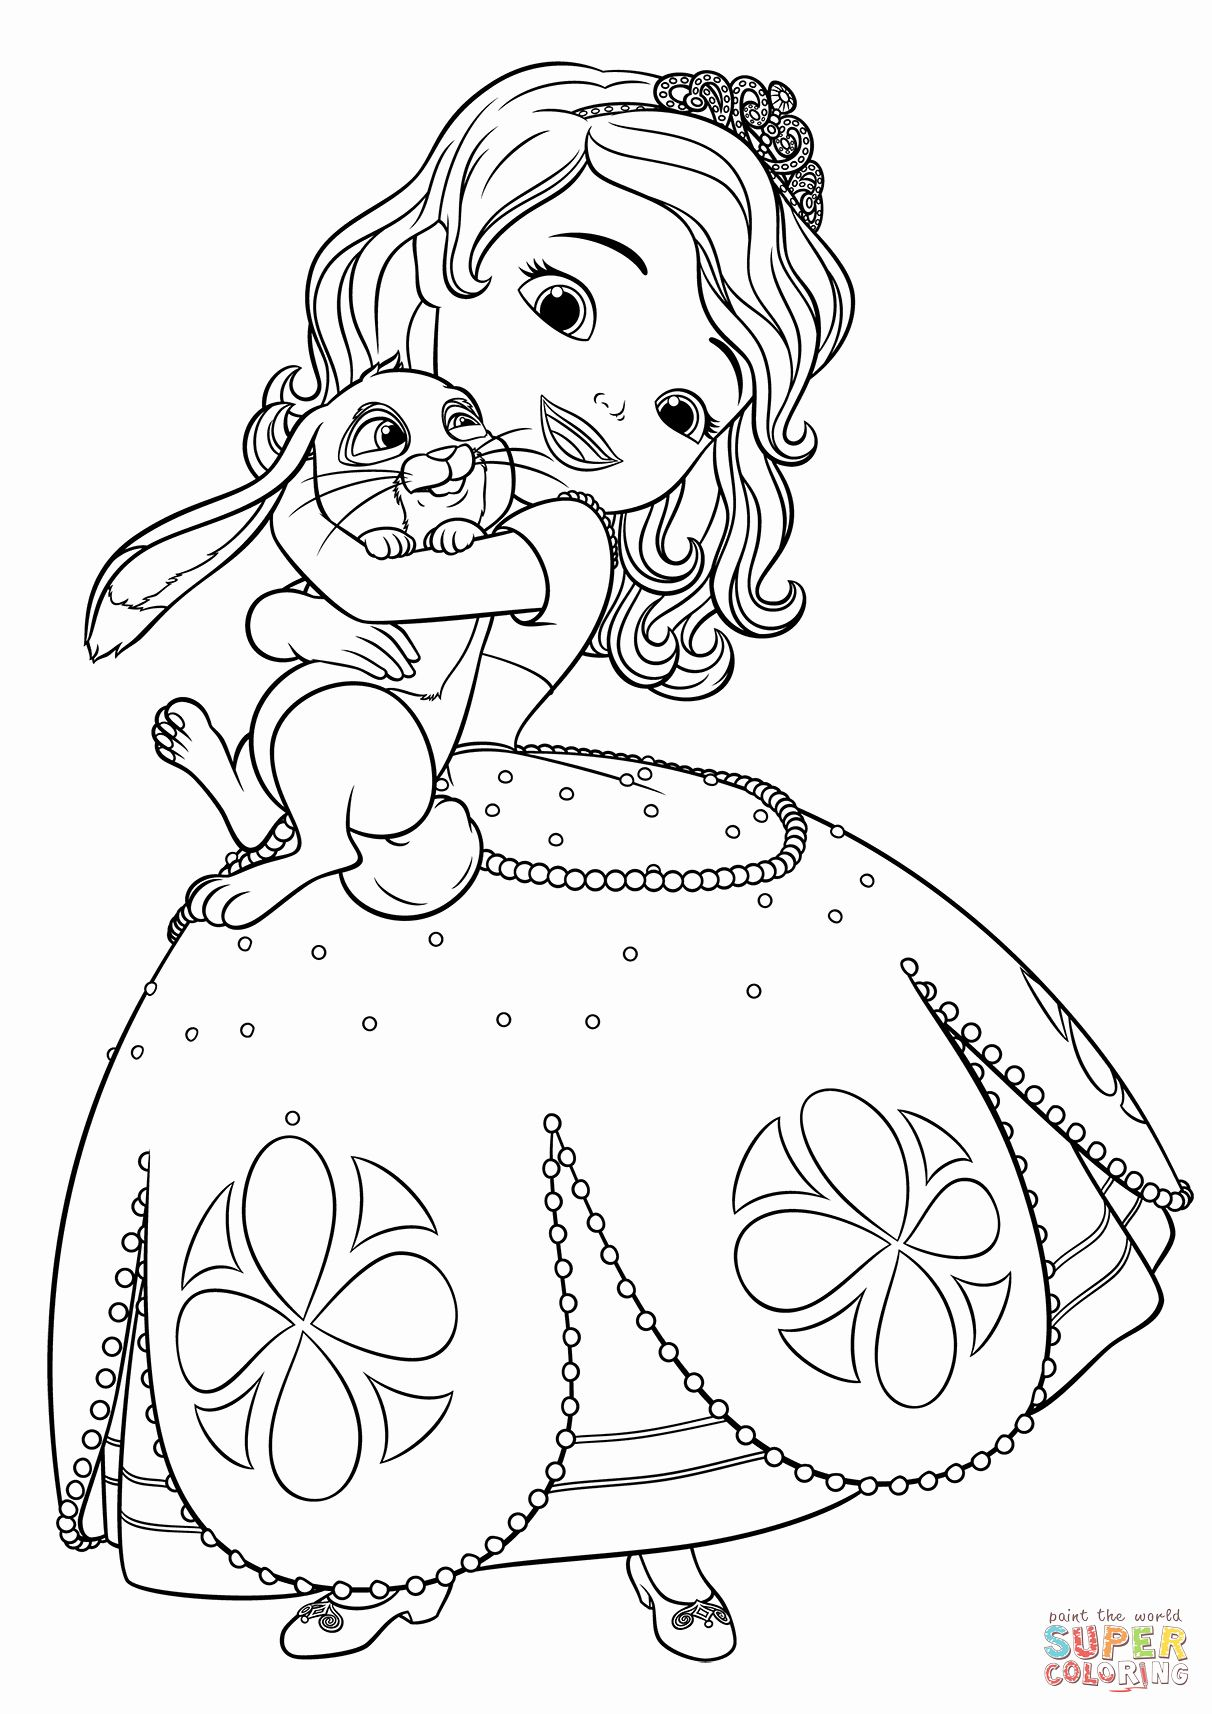 cute princess coloring pages cute tinkerbell on disney princesses coloring page kids princess cute coloring pages